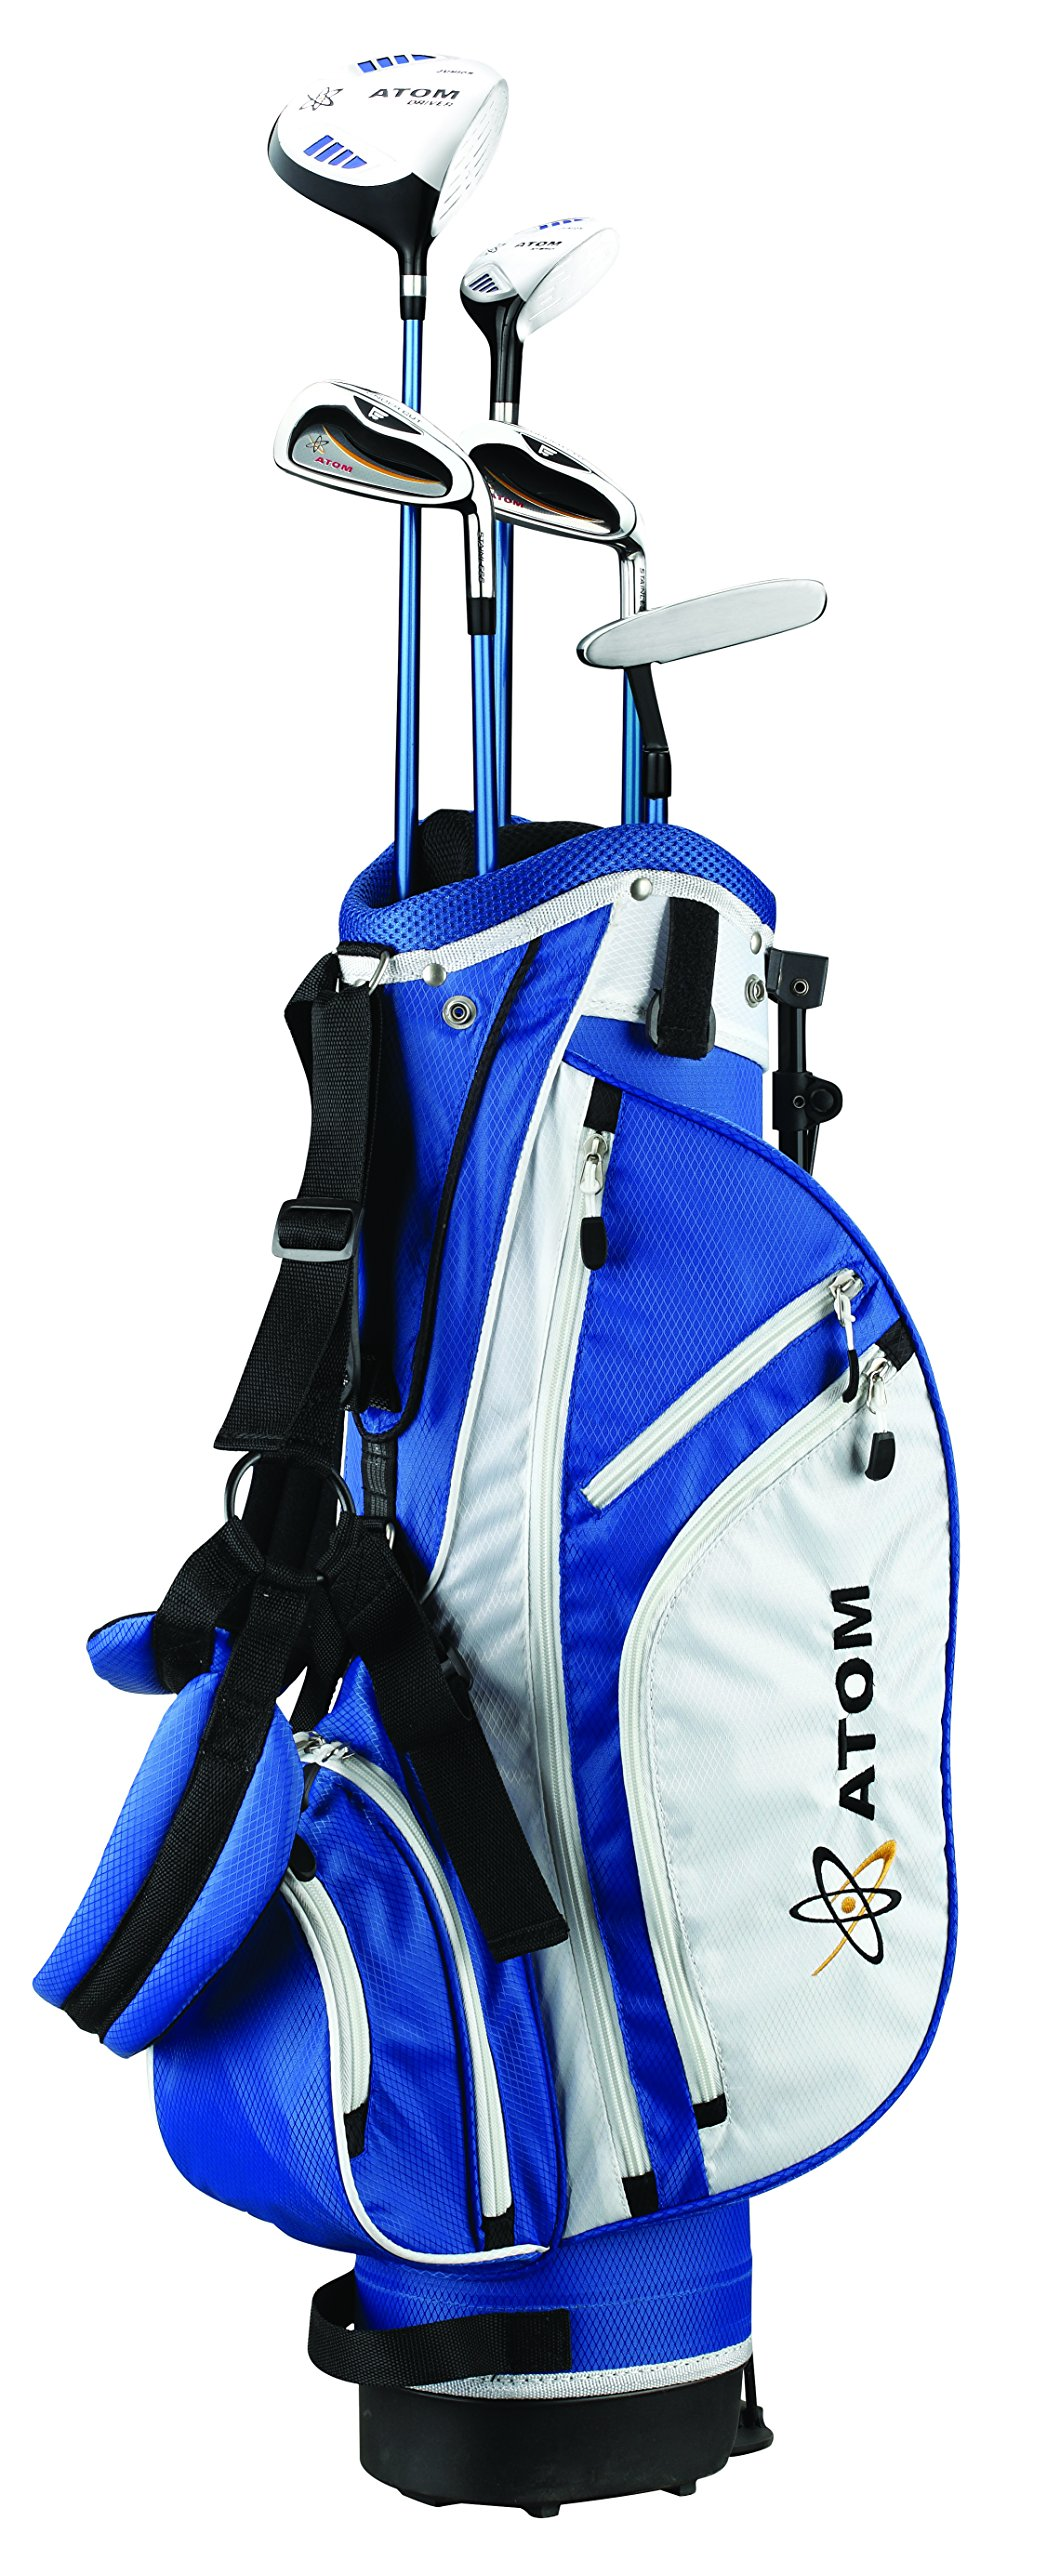 Founders Club Atom Complete Junior Golf Set, Youth 54-63'' Tall, Ages 10-13, Right-Handed by Founders Club (Image #1)